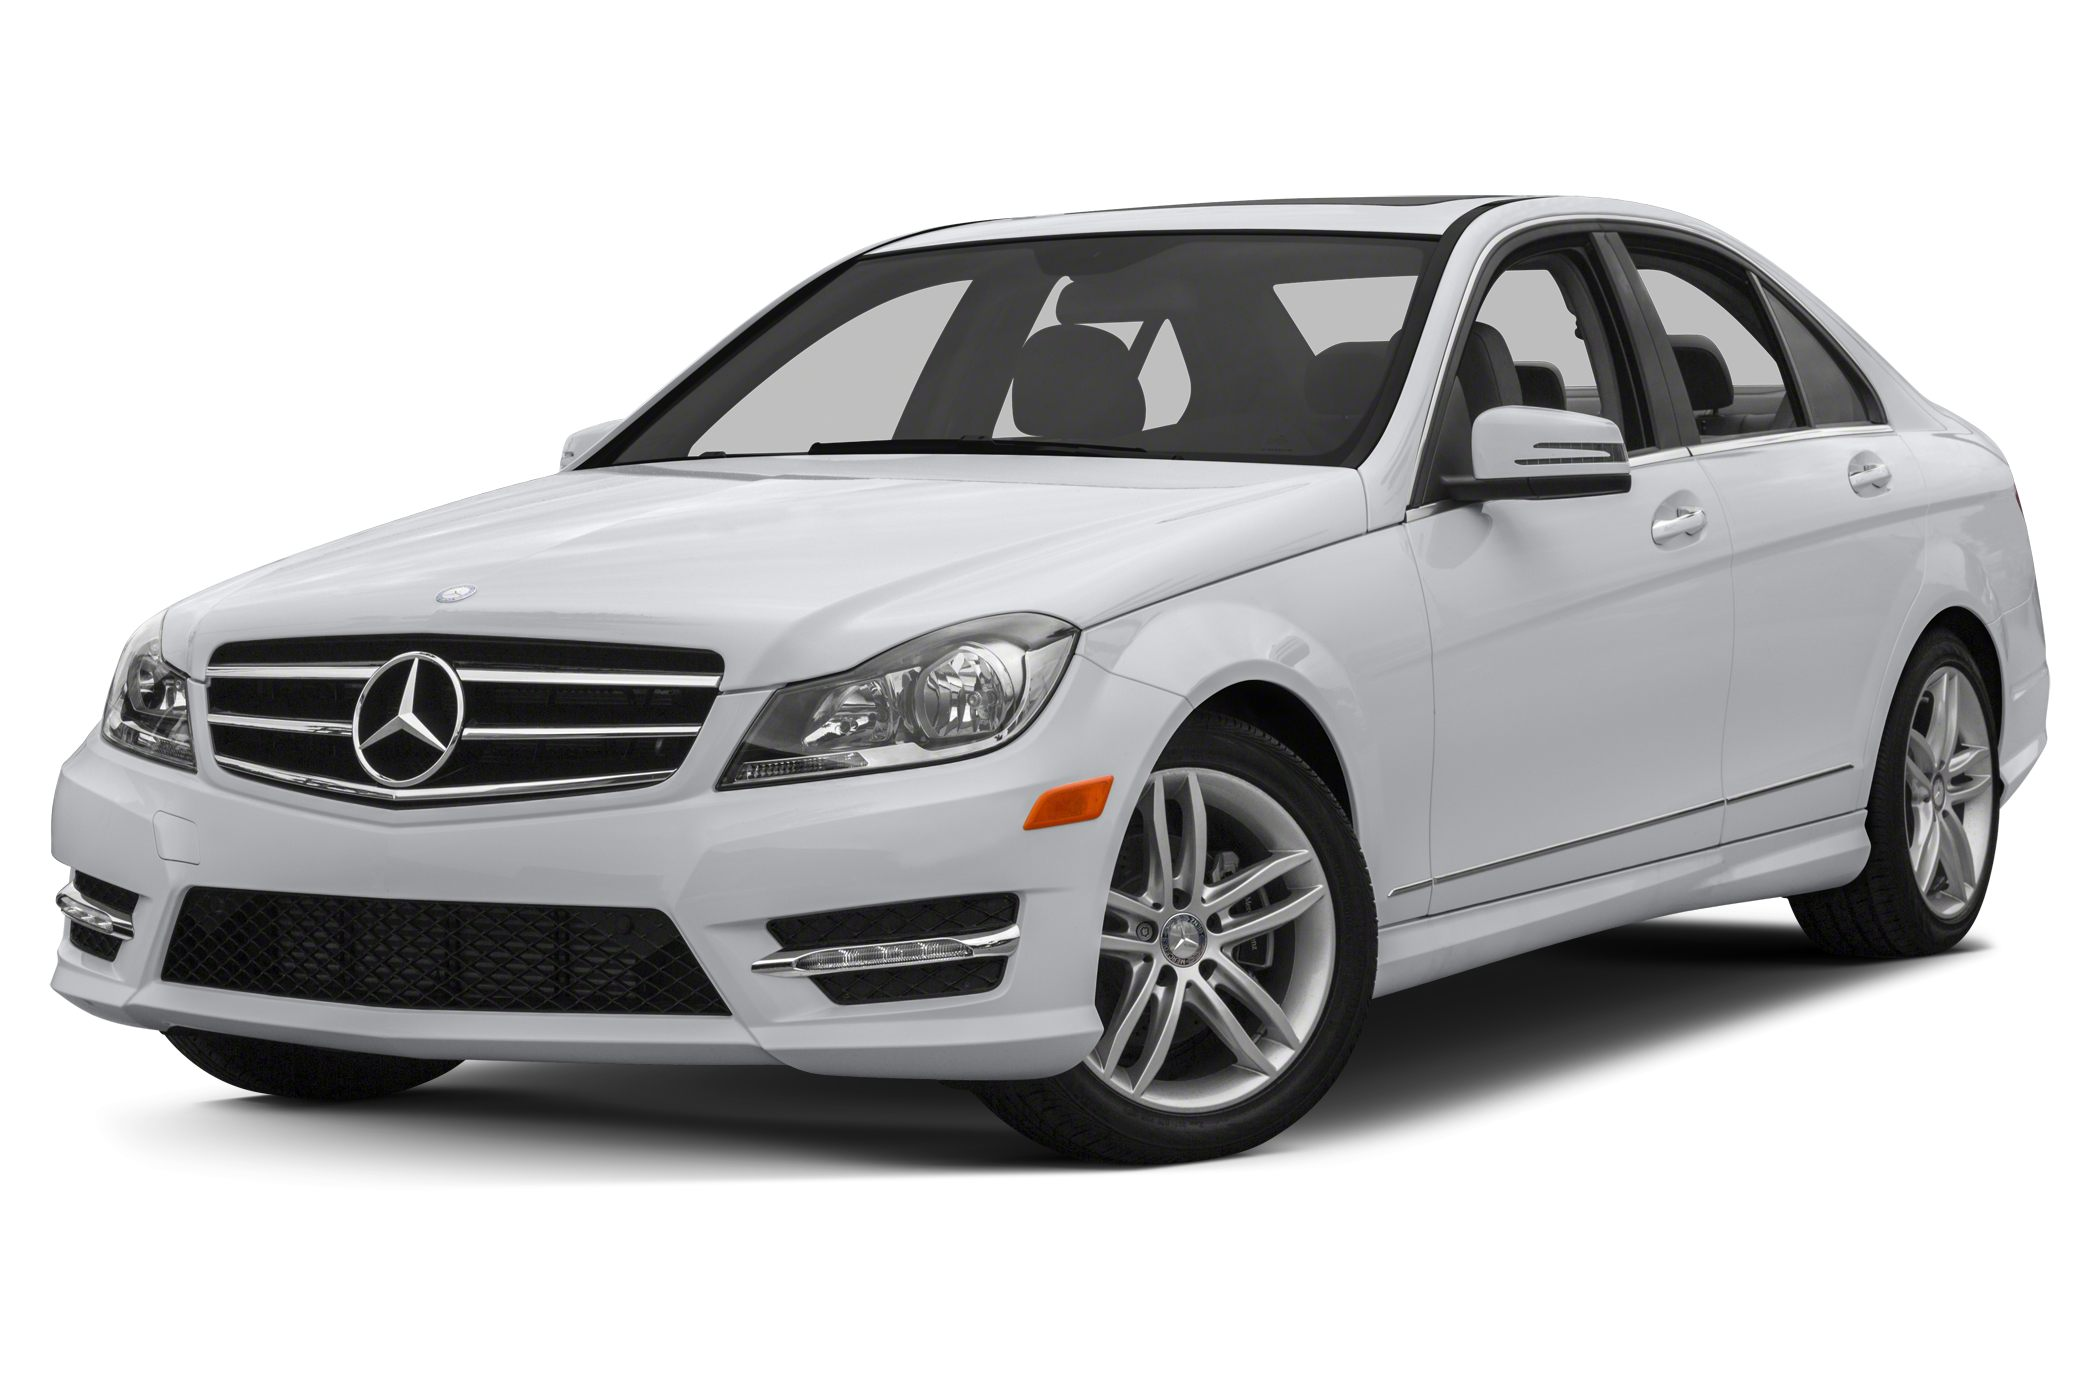 2014 MERCEDES C-Class C250 Sport LOW MILES - 27000 JUST REPRICED FROM 25000 PRICED TO MOVE 2